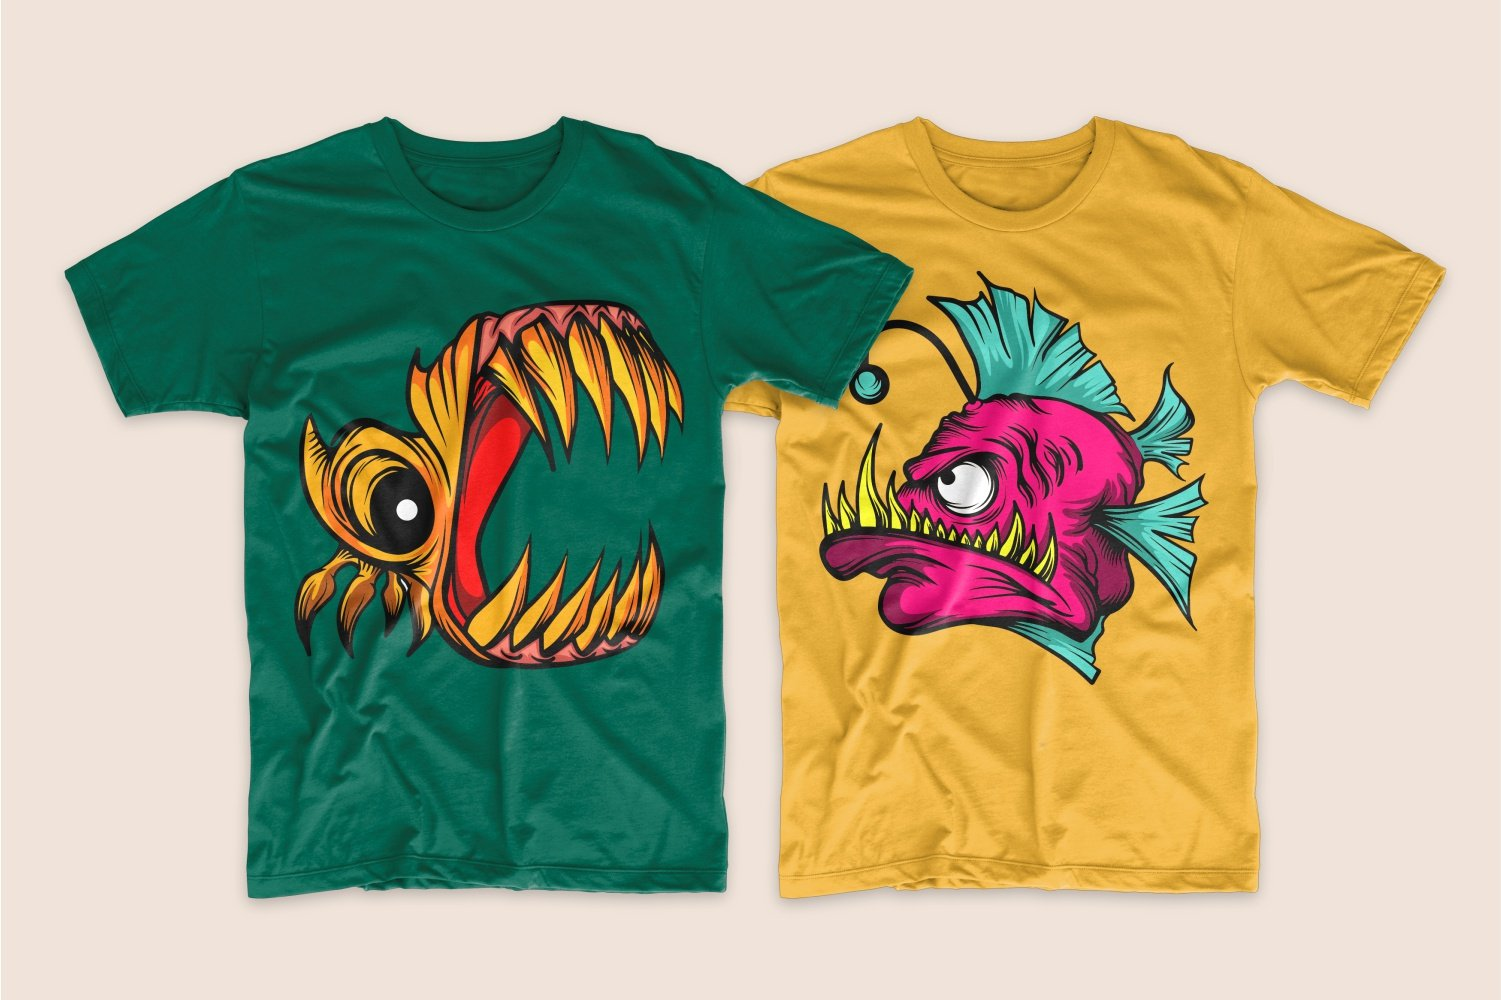 Green T-shirt with monster fish and yellow T-shirt with raspberry piranha.